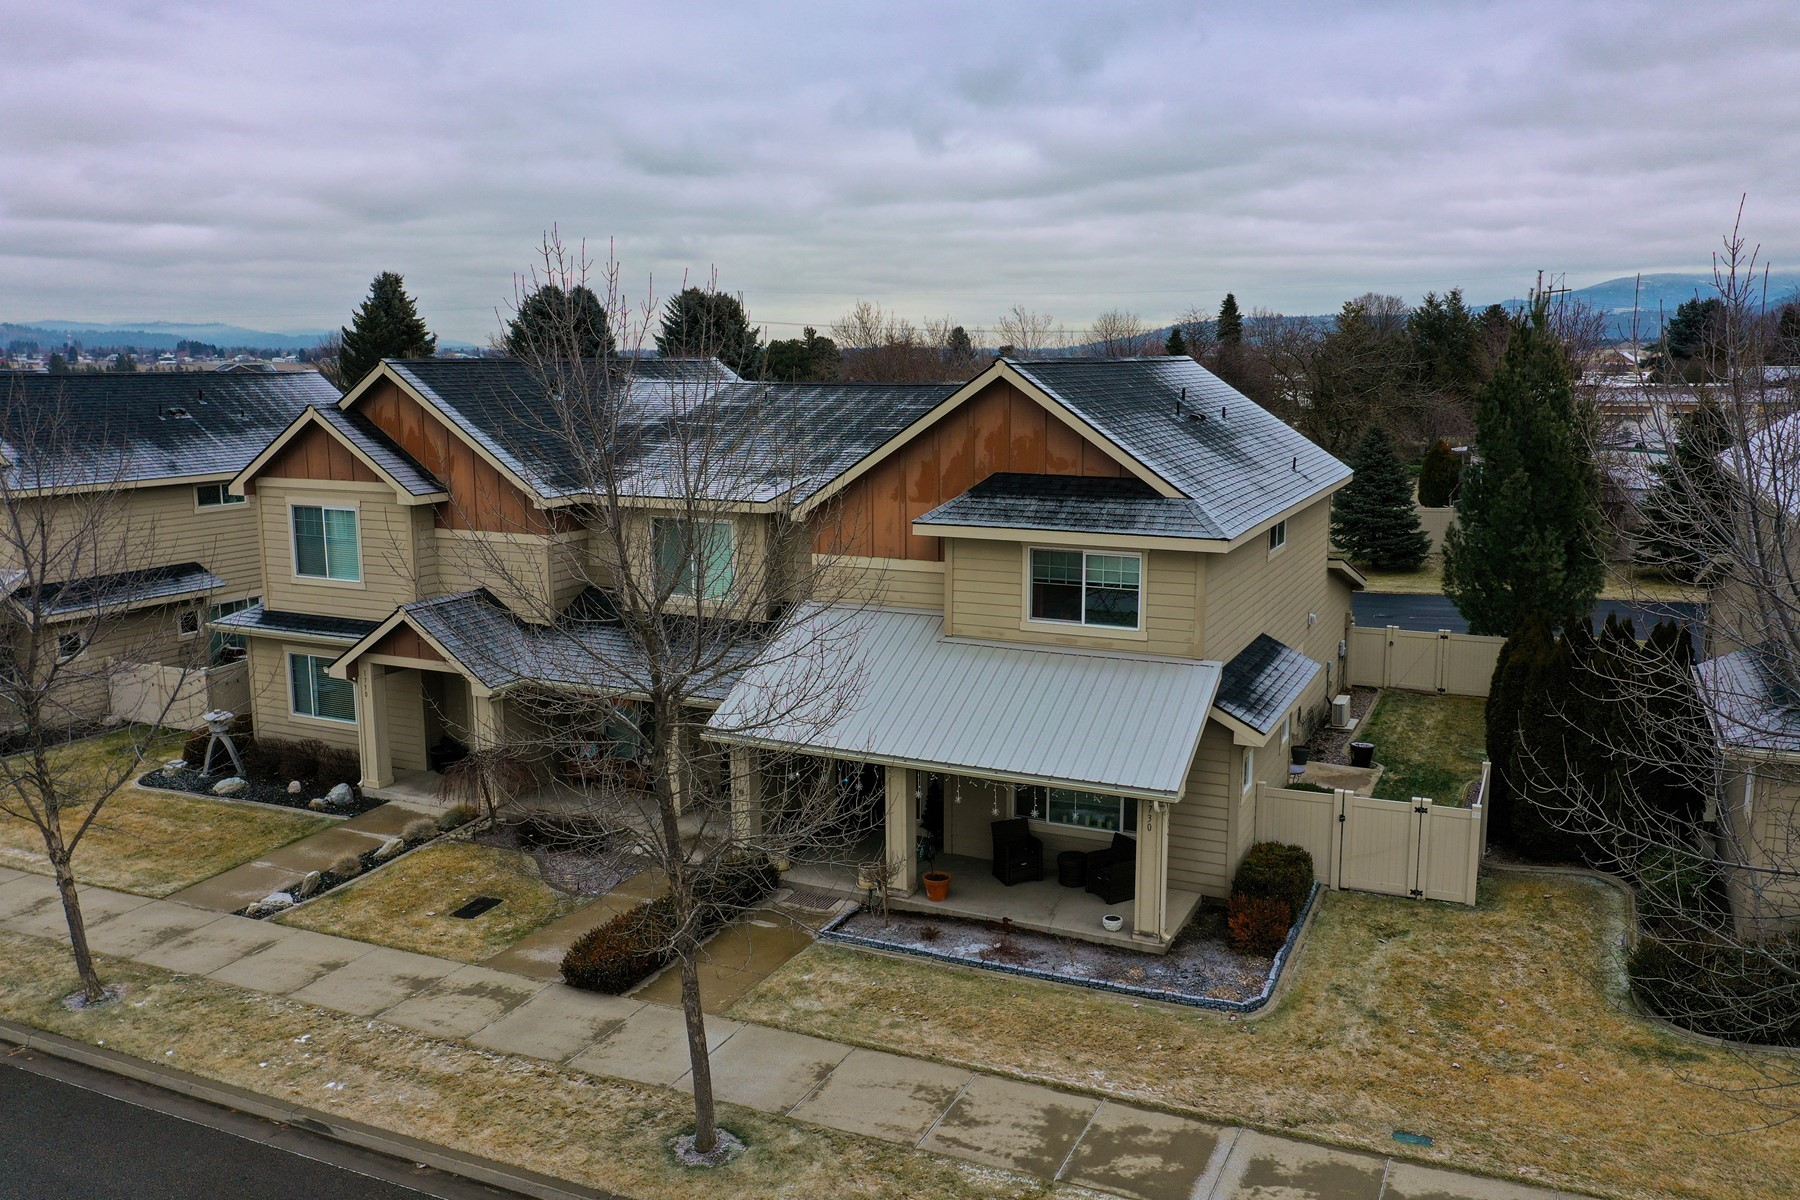 townhouses for Sale at Liberty Lake River District 1730 N Willamette Rd Liberty Lake, Washington 99016 United States